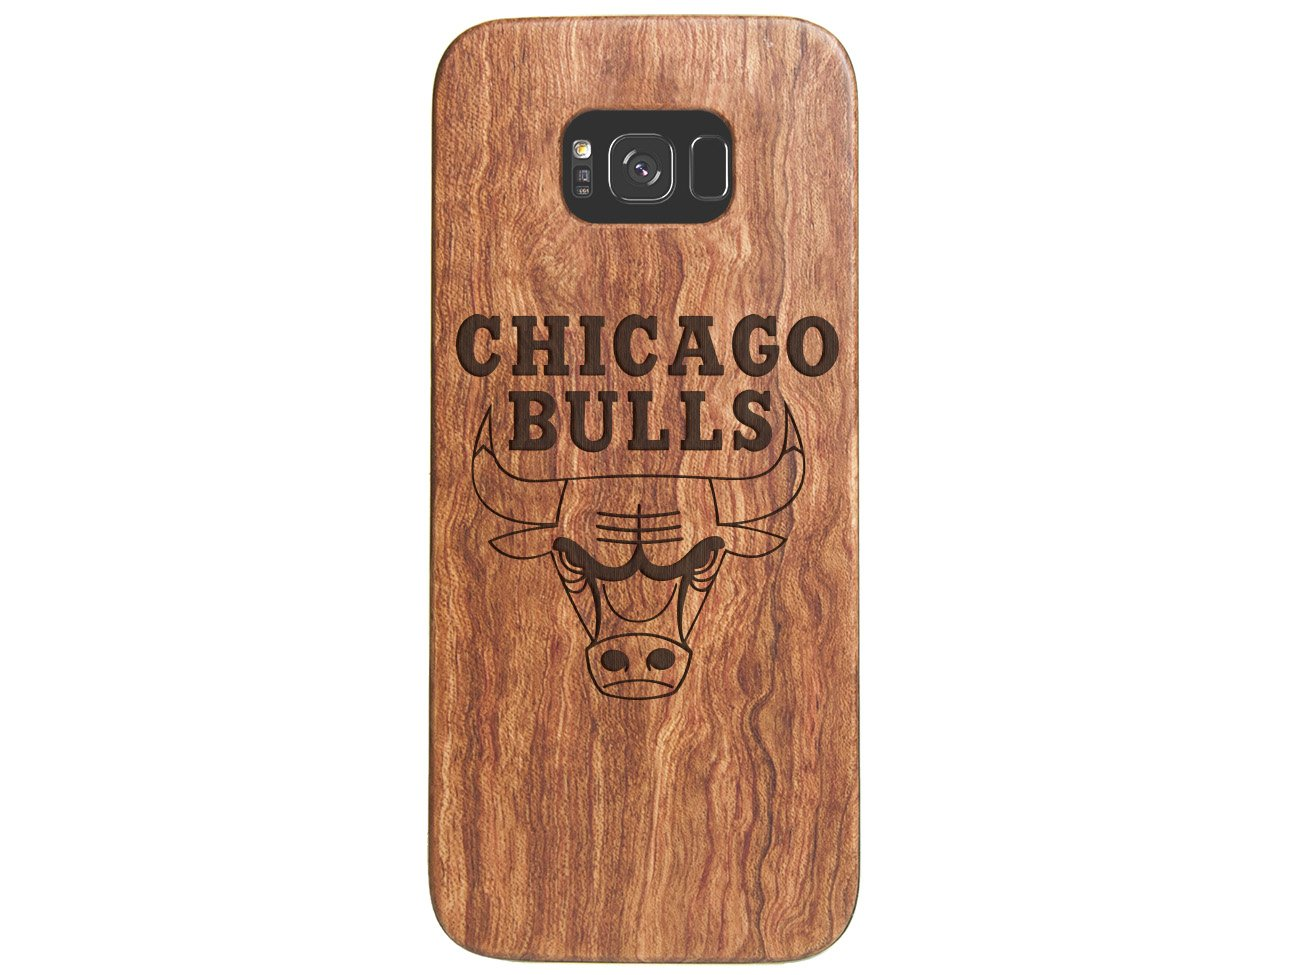 Chicago Bulls Galaxy S8 Case